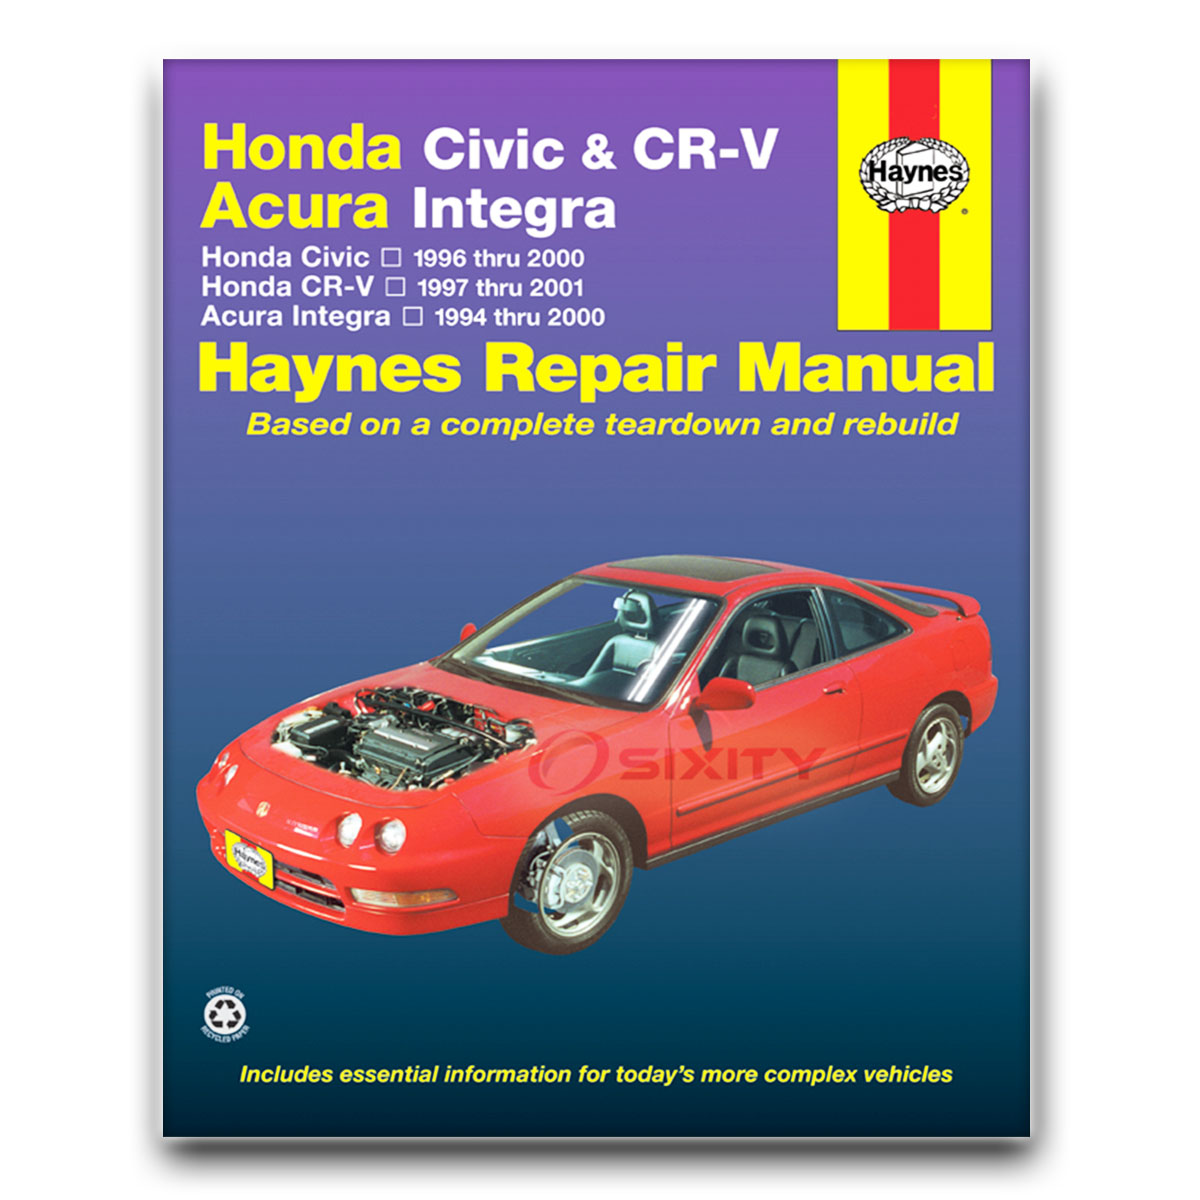 Haynes Repair Manual for Acura Integra RS LS Type GS GS-R Special Edition cx